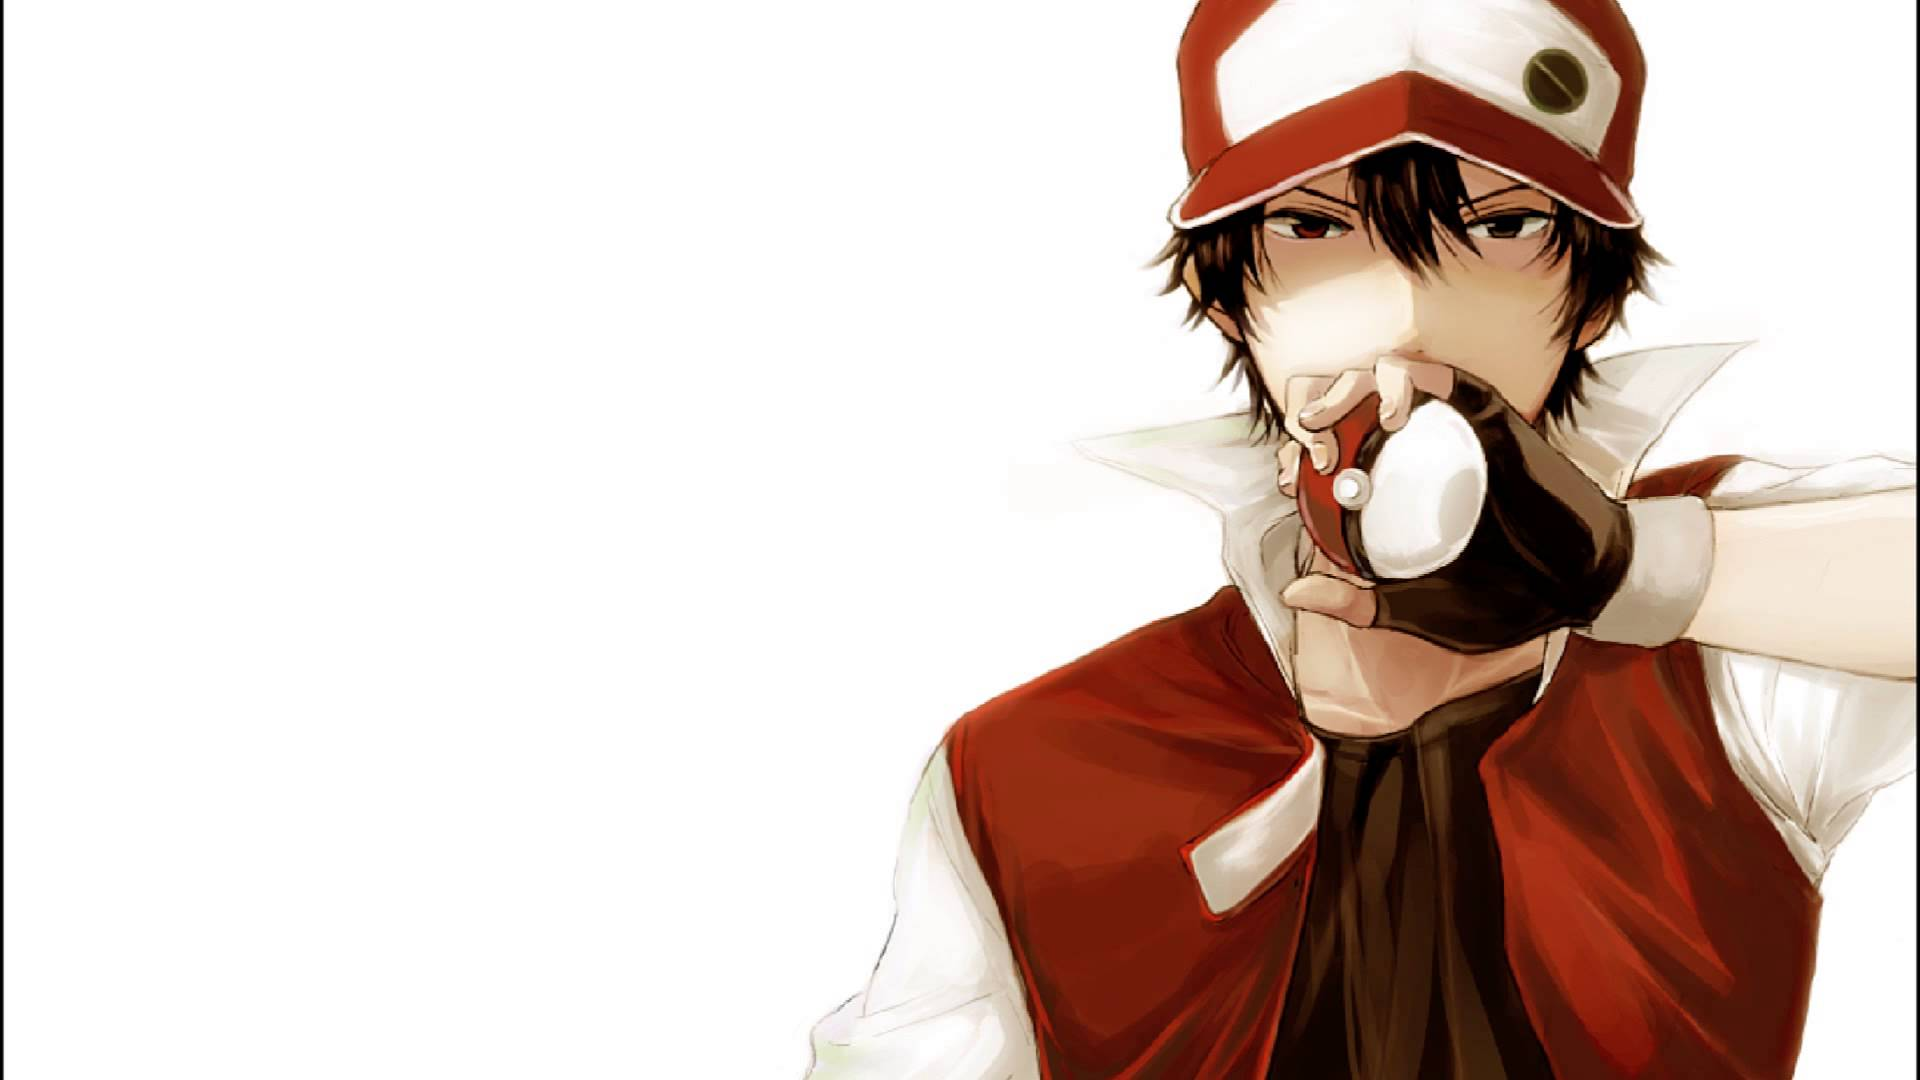 Image For > Pokemon Trainer Red Wallpapers